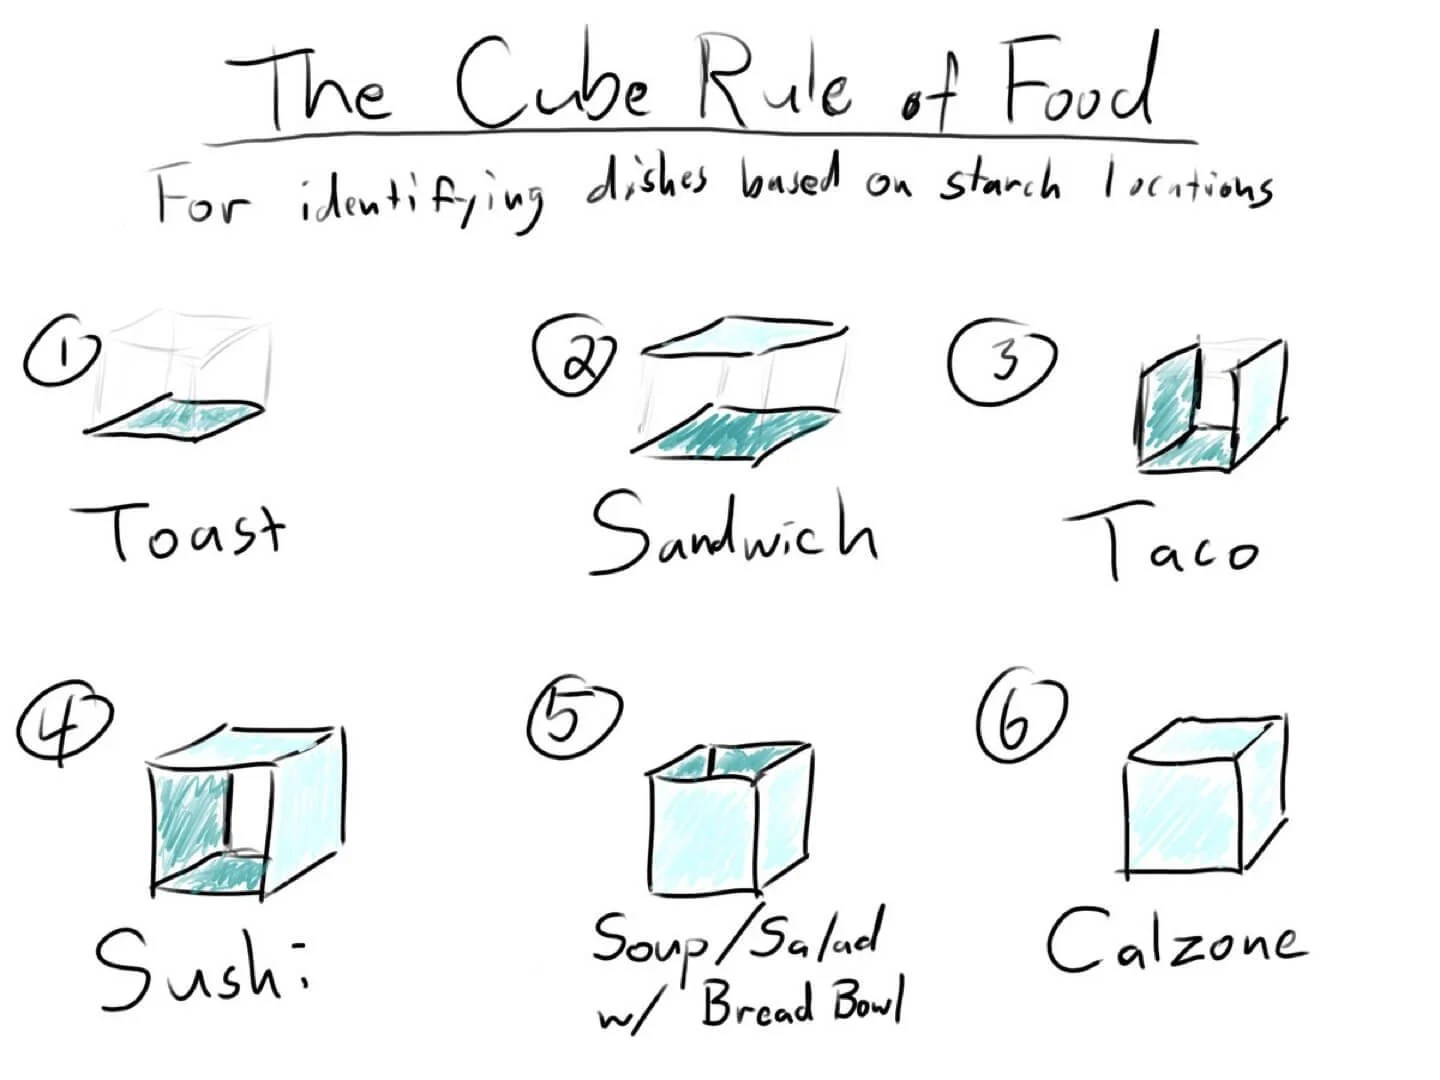 Determine Which Foods Are A Sandwich With The 'Cube Rule'